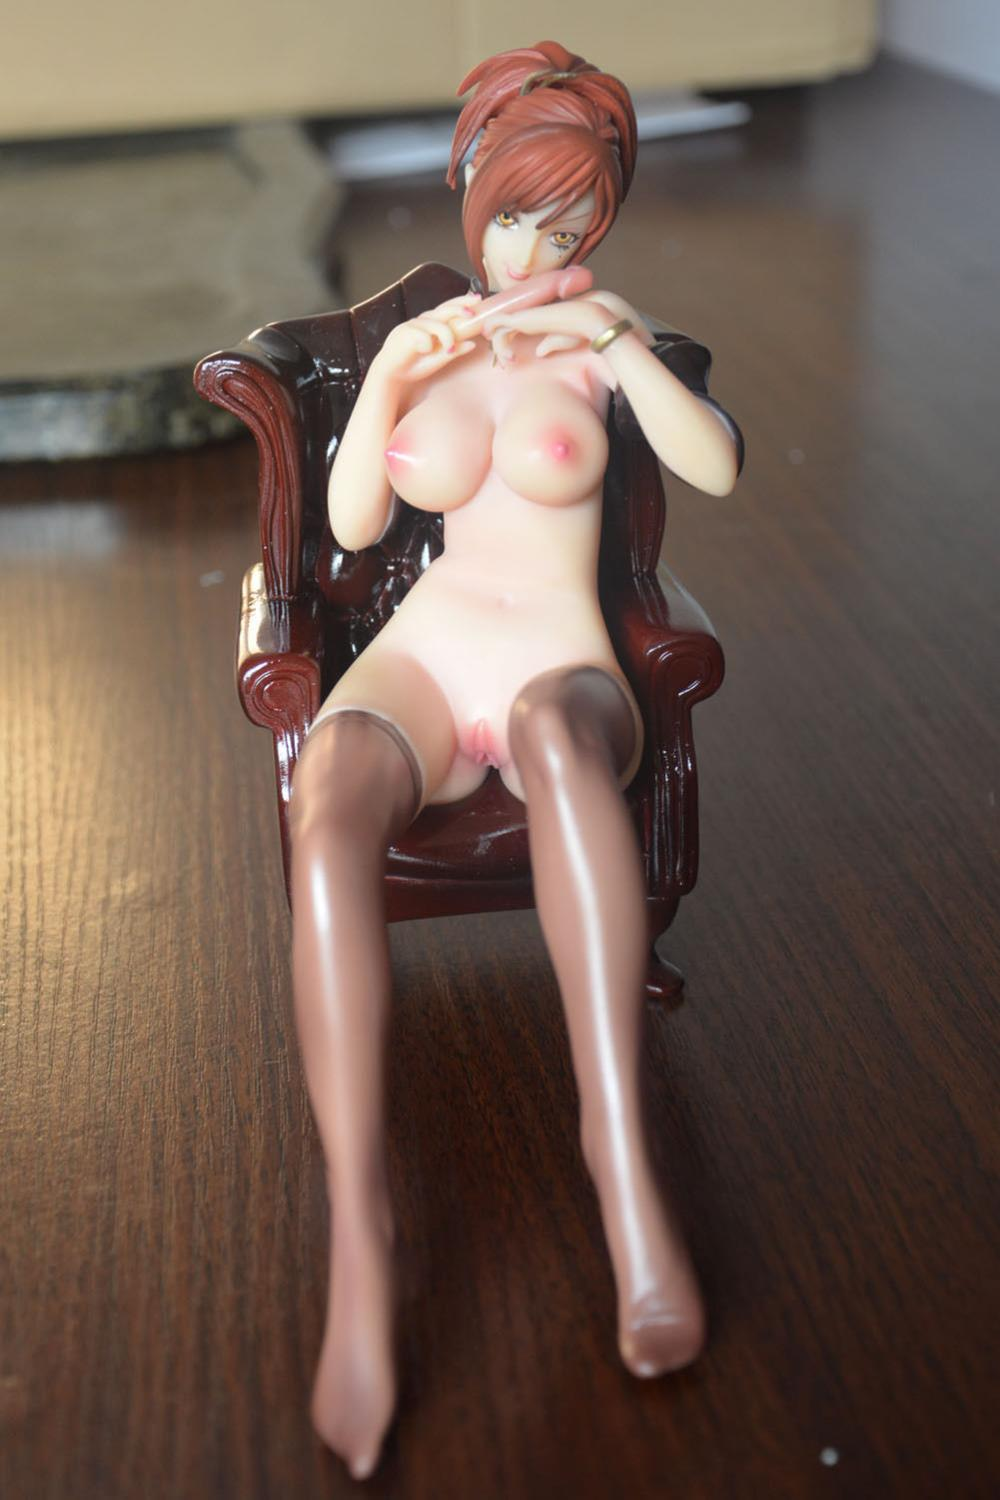 Sexy Girls Anime Nude Sex Figure Doll Marie Mamiya Resin -8101